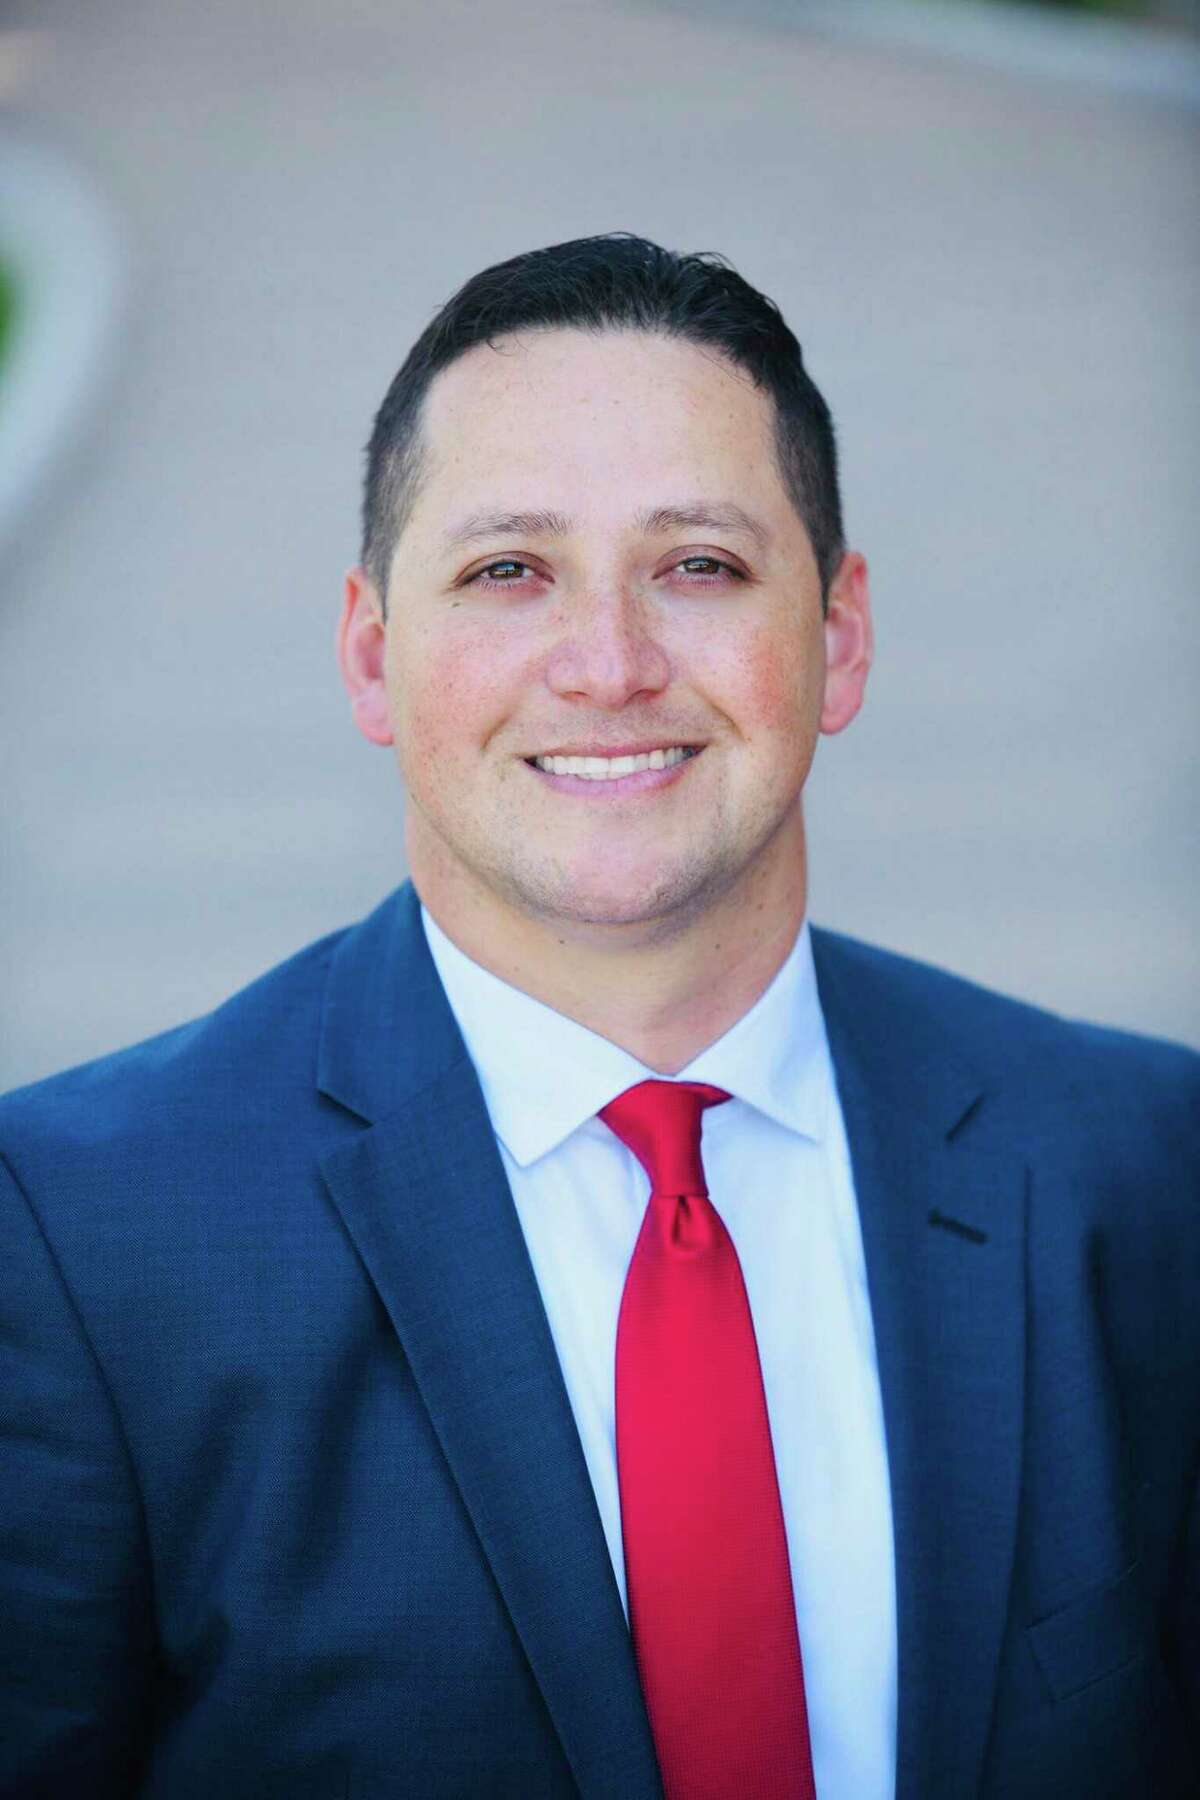 U.S. District 35 candidate Tony Gonzales is completing 20 years in the Navy.